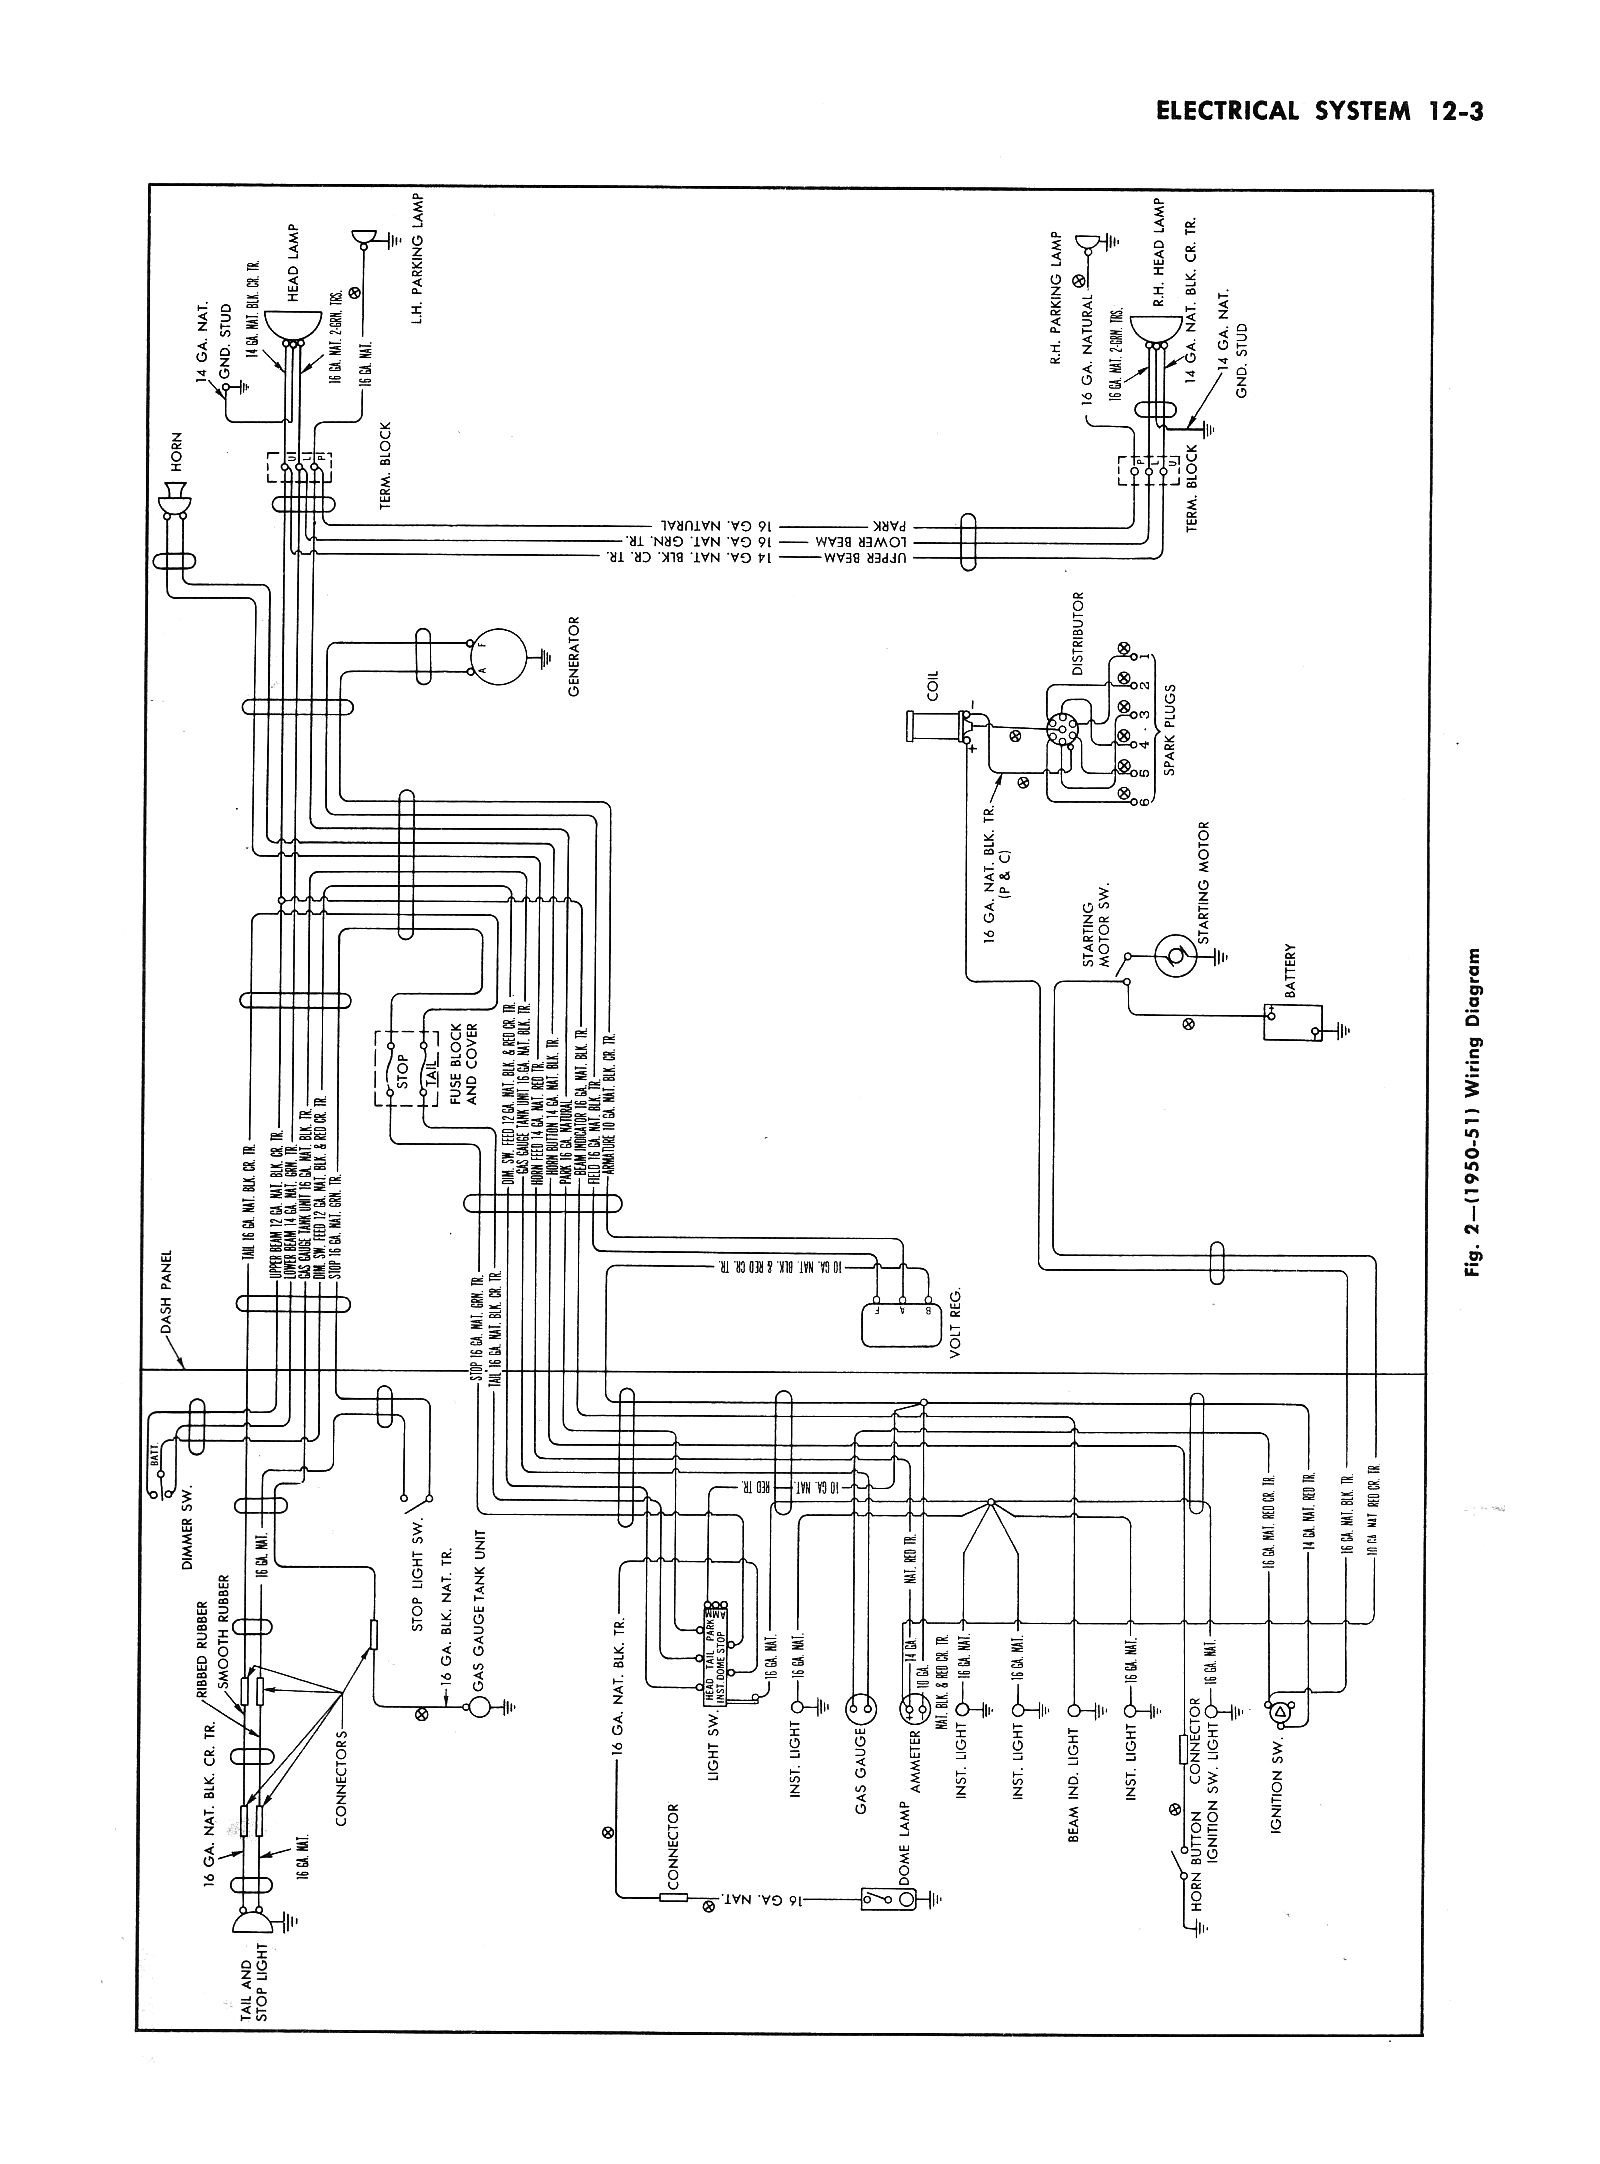 49 Ford F1 Wiring Diagram Trusted 1953 Naa 1949 Horn Get Free Image About Rh Autonomia Co